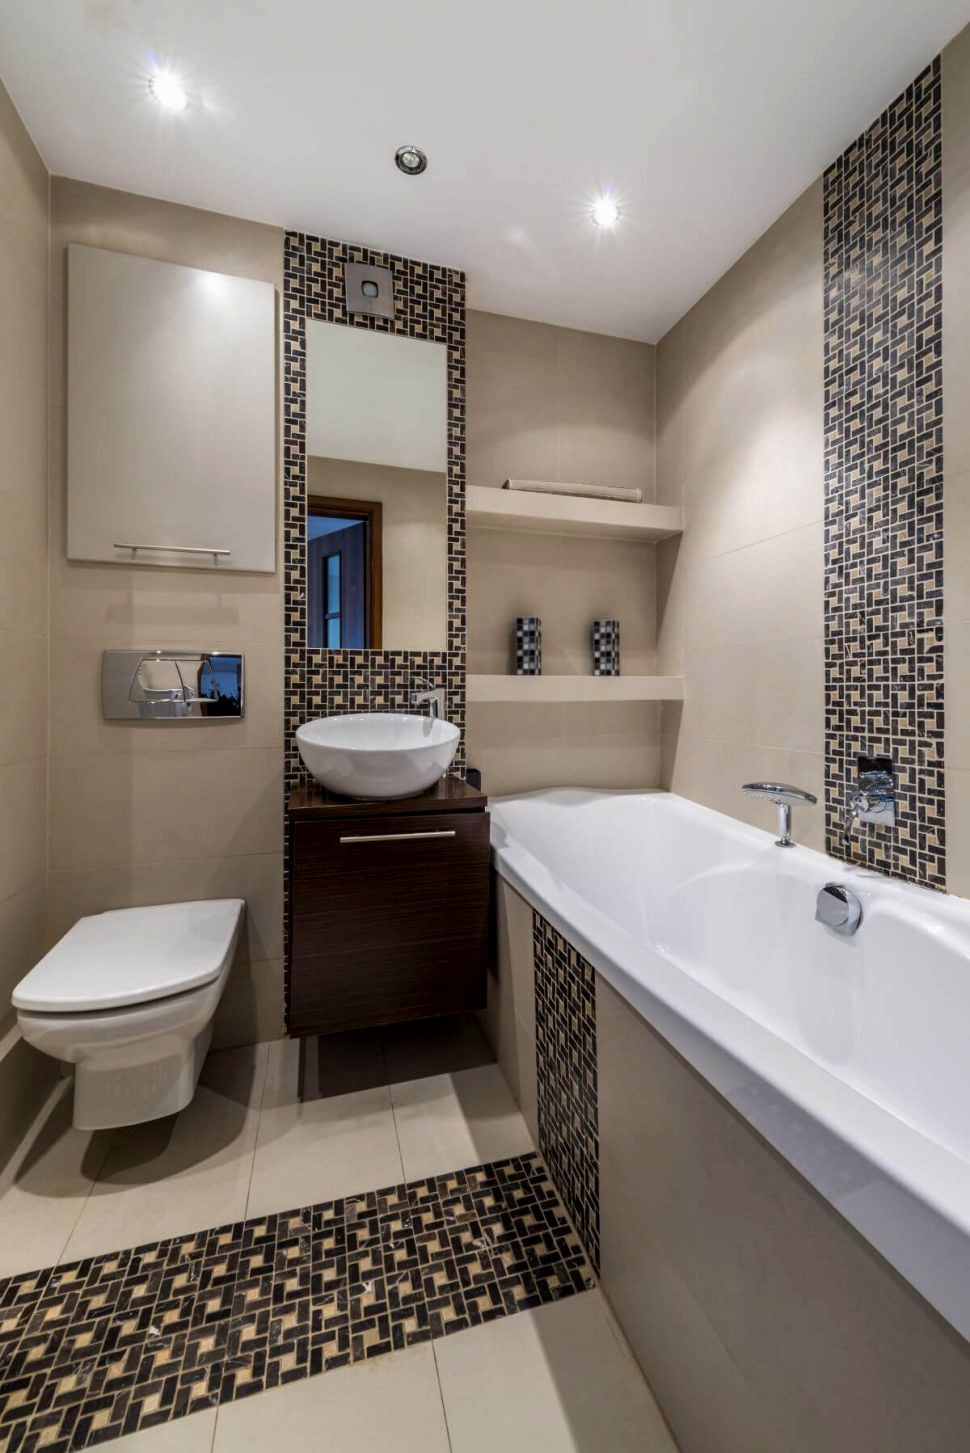 fresh bathroom designs for small spaces concept-Excellent Bathroom Designs for Small Spaces Concept